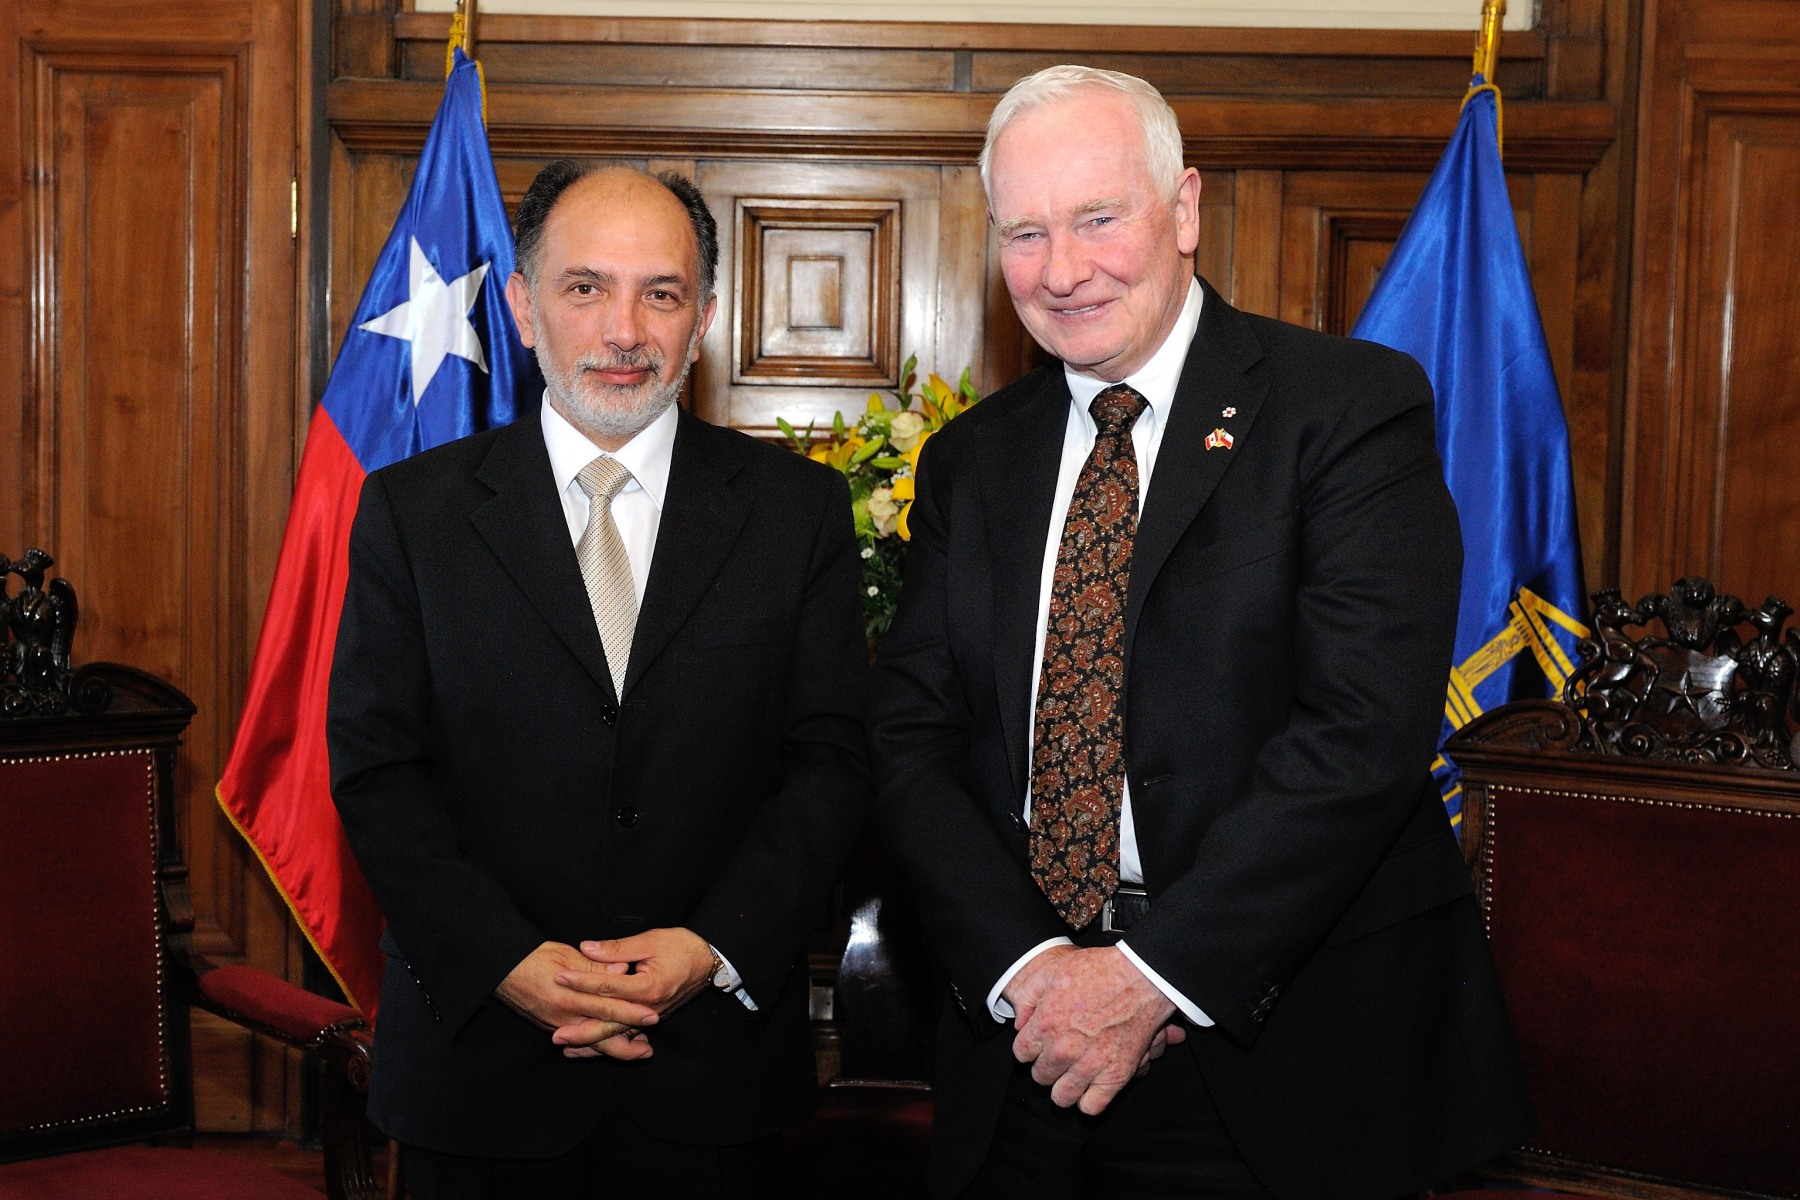 His Excellency met with Sergio Manuel Muñoz Gajardo, President of the Supreme Court of Chile.